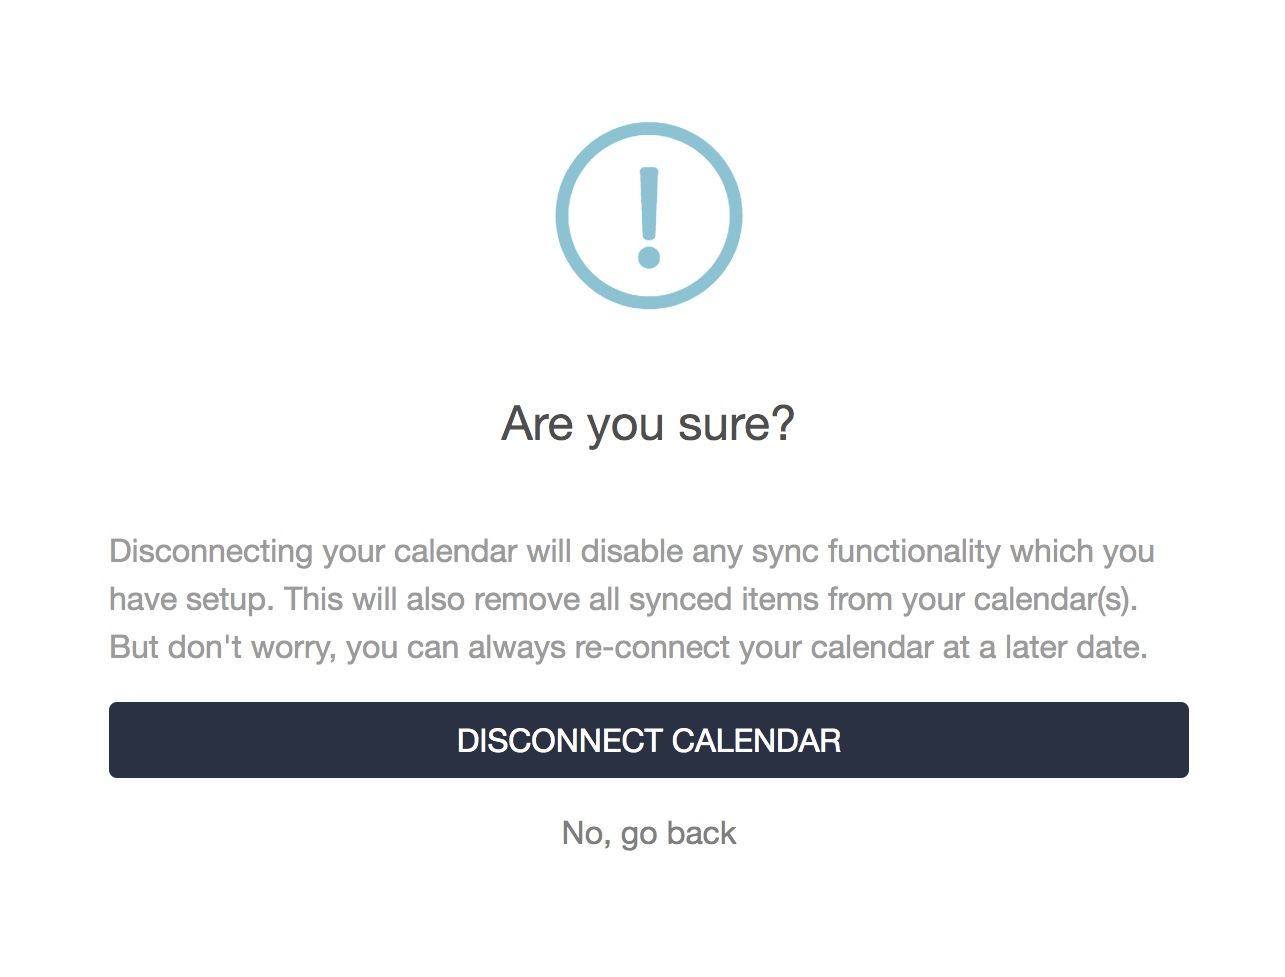 connectup-disconnect-calendar.jpg